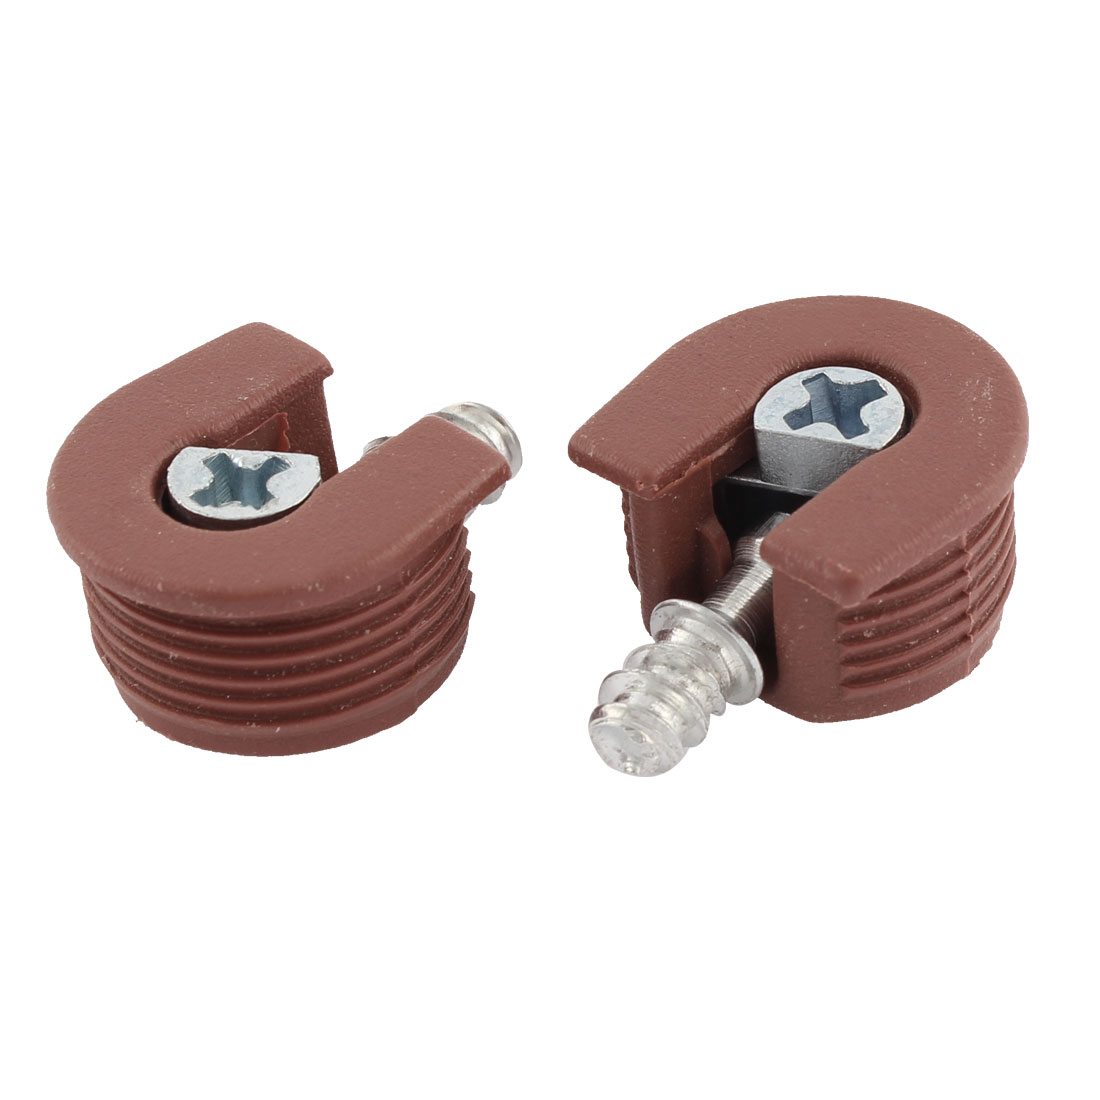 Furniture Metal Three-in-One Screw in Shelf Support Pin Supporter Brick Red 2Pcs